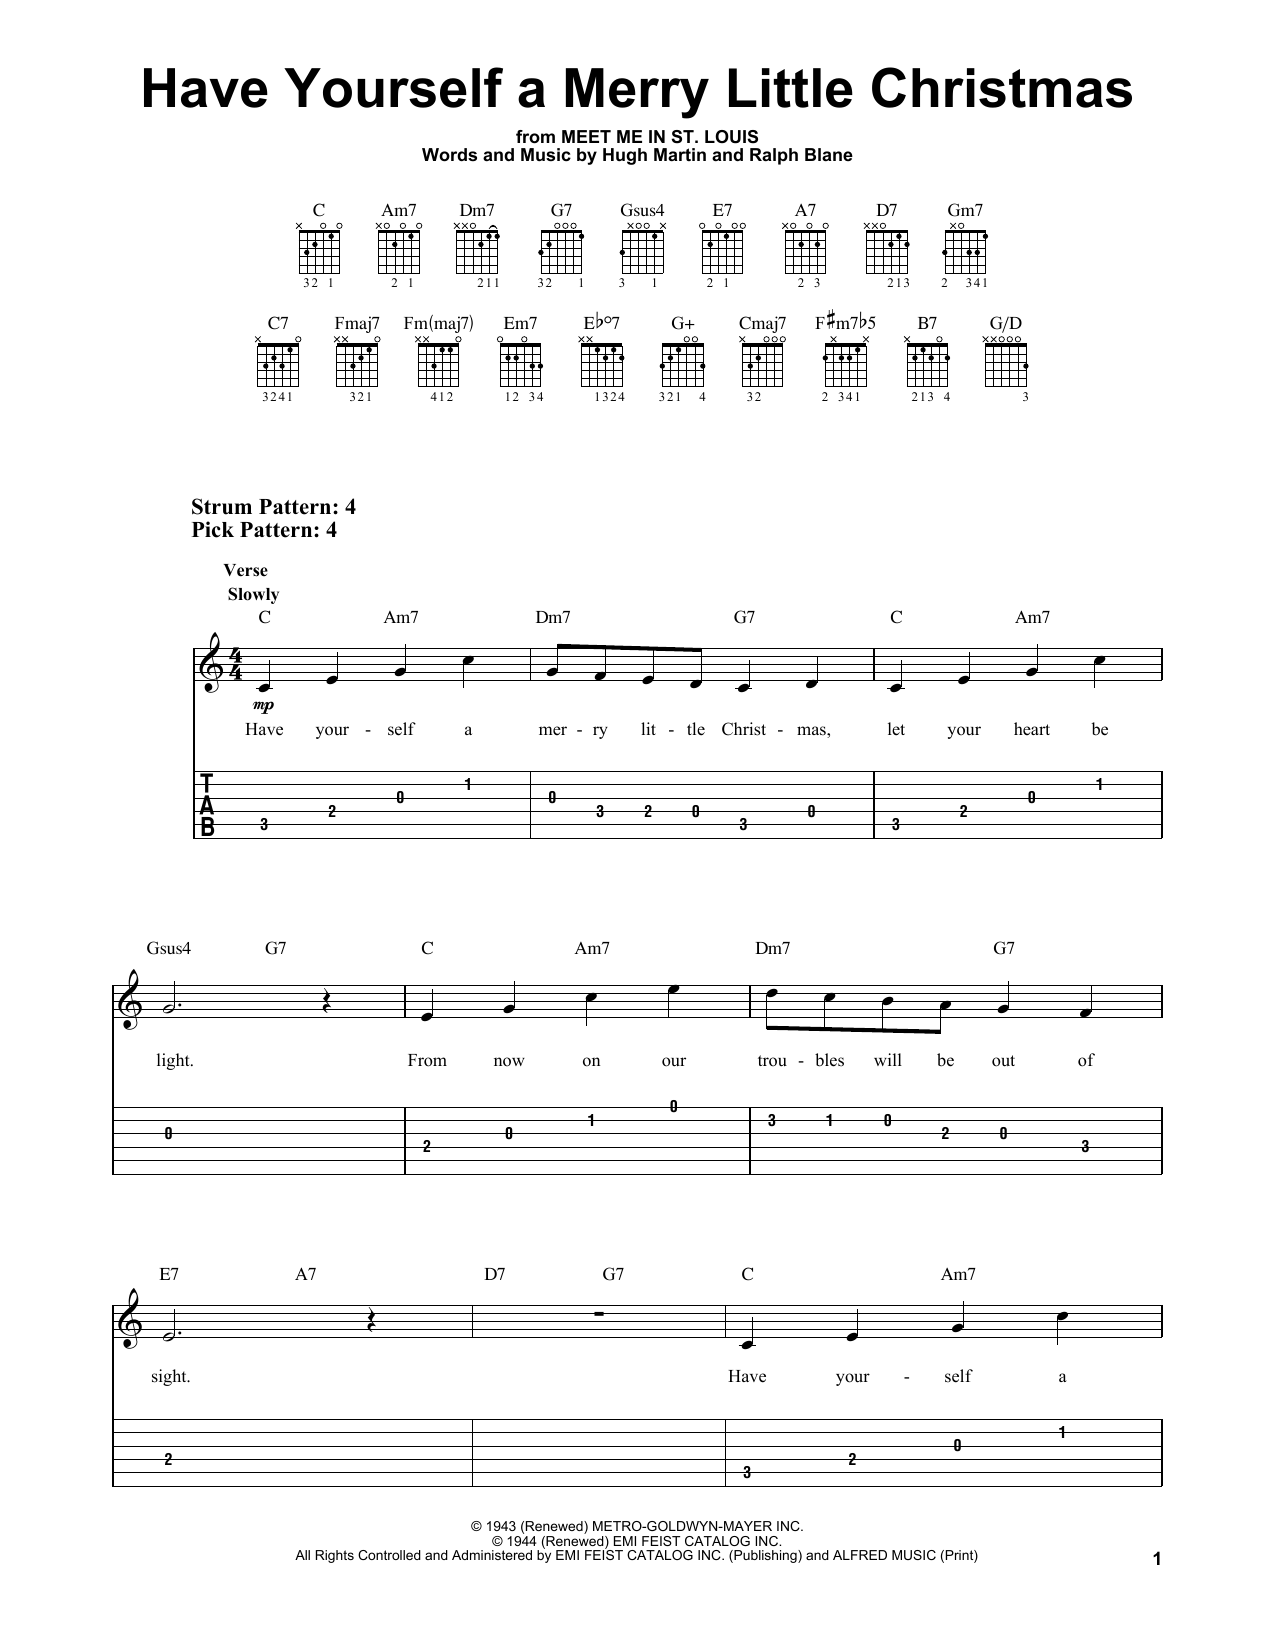 have yourself a merry little christmas sheet music - Have Yourself A Merry Little Christmas Tab